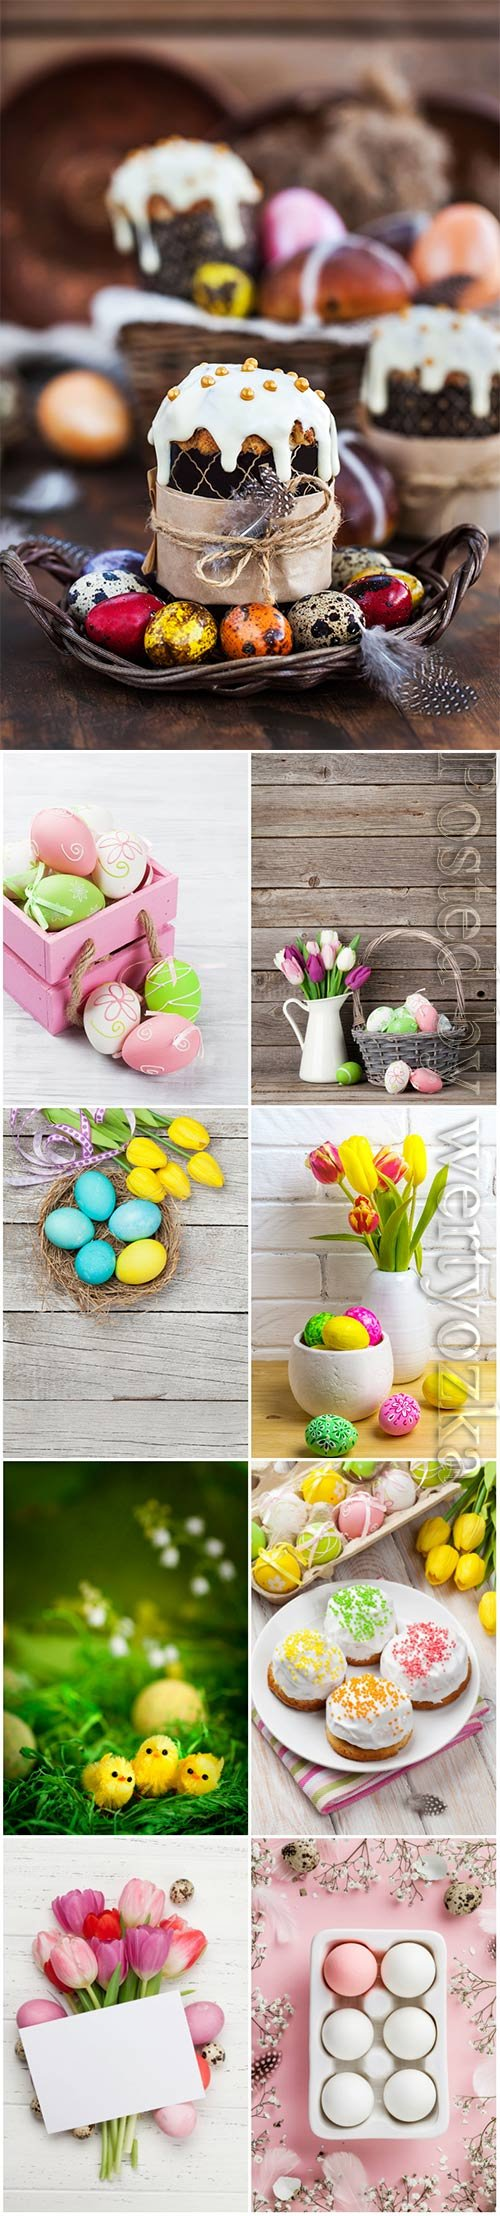 Happy Easter stock photo, Easter eggs, spring flowers # 11